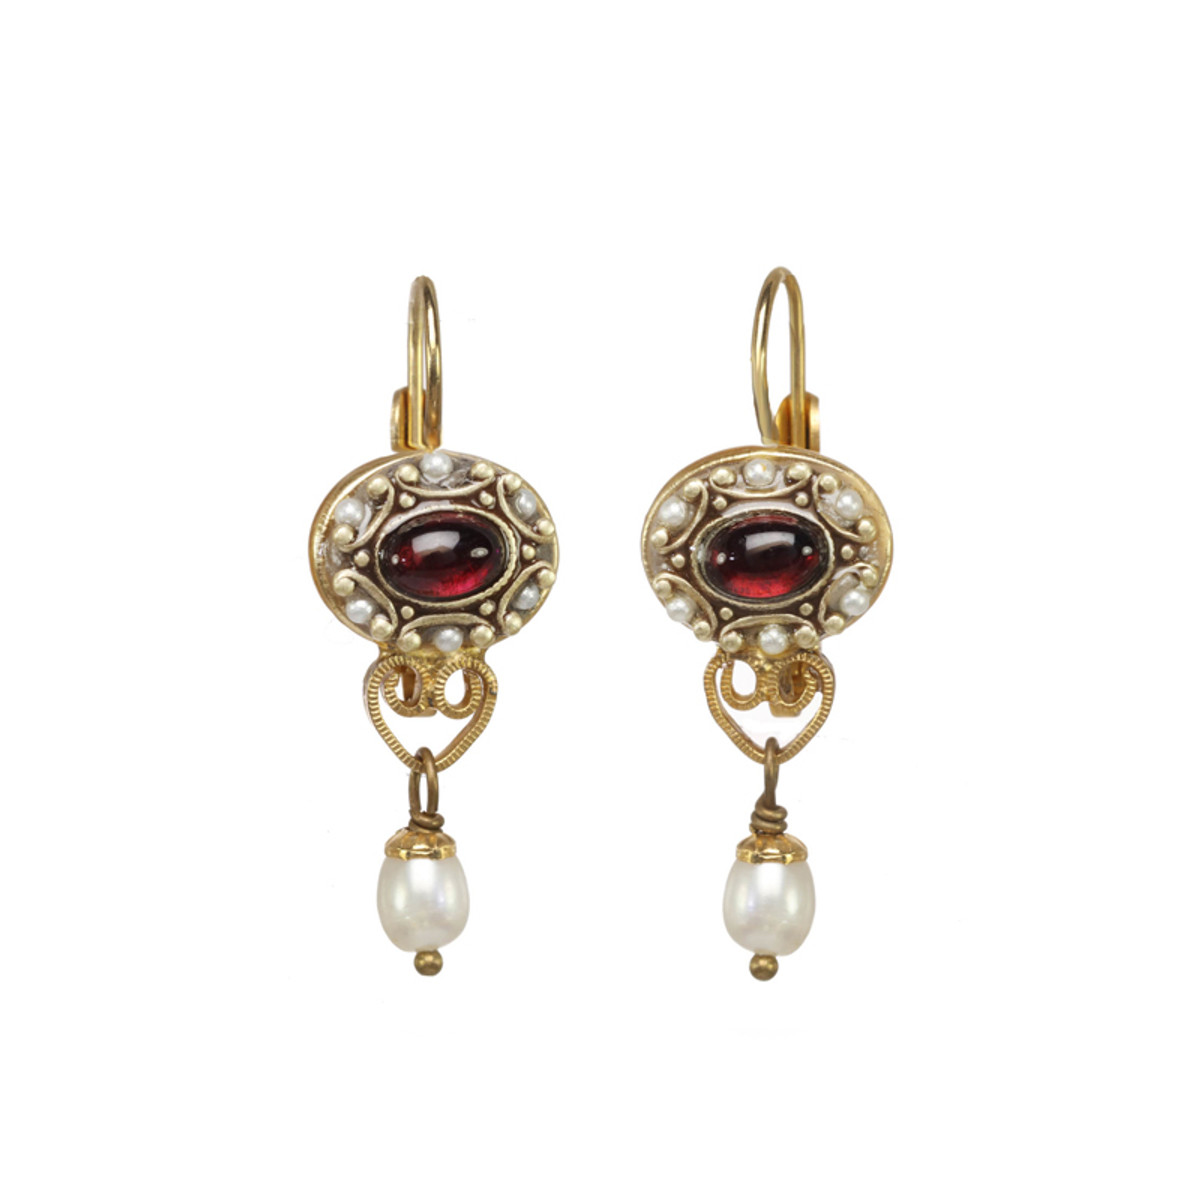 Michal Golan Victorian Charming Earrings